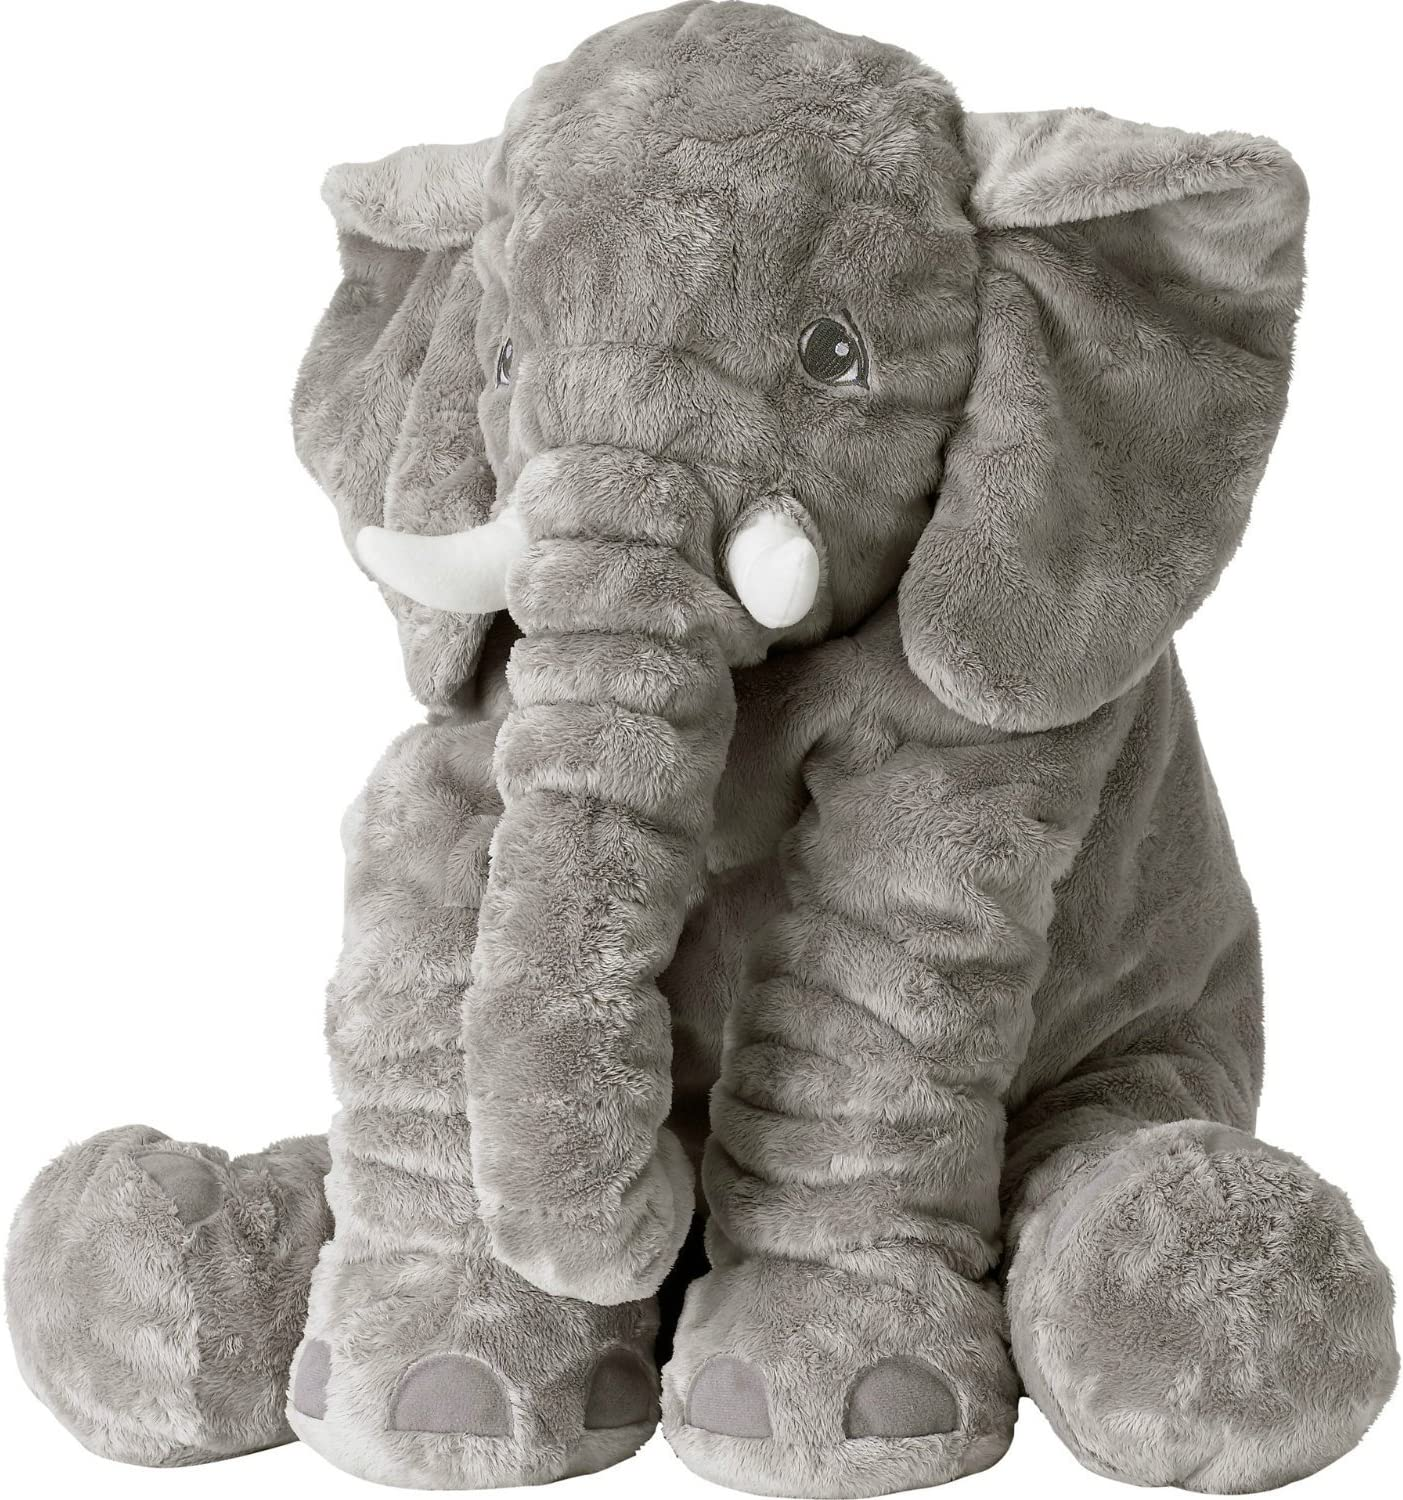 Weslisa Elephant PlushToys Soft Animal Toys Stuffed Cushion Cute Children's Gifts (Grey)